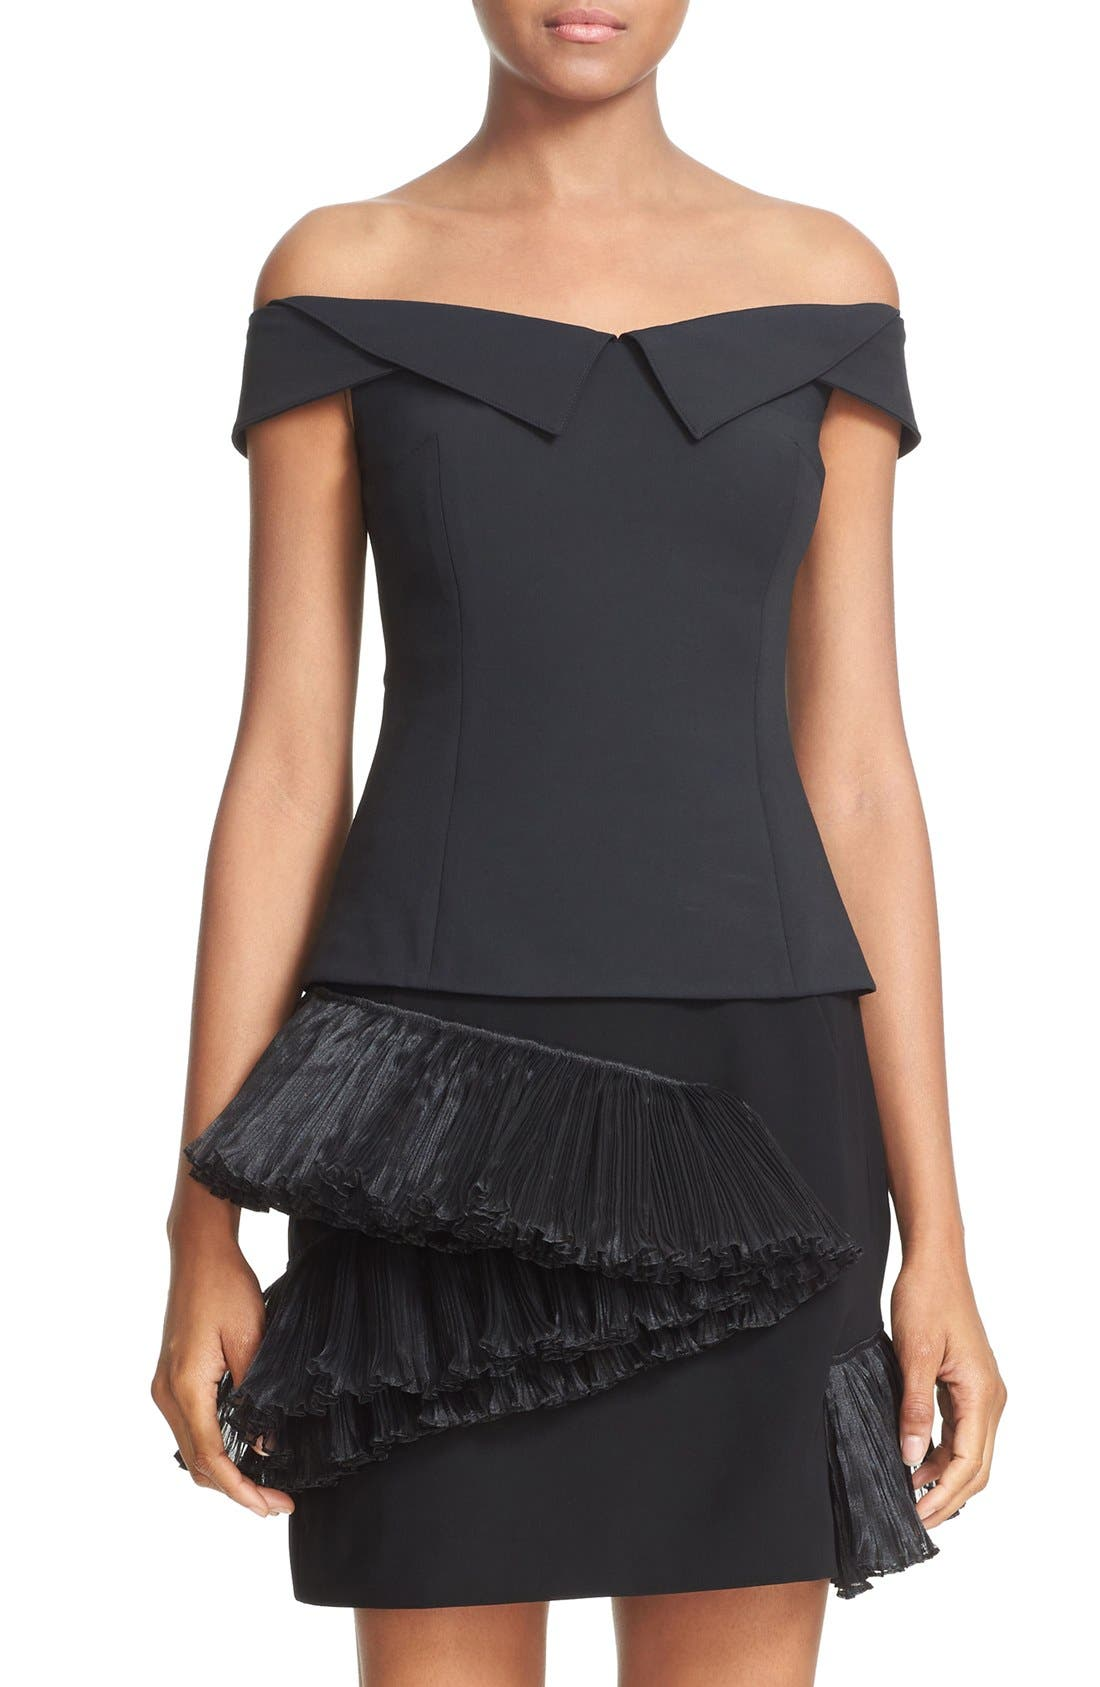 Alternate Image 1 Selected - Opening Ceremony 'William' Off the Shoulder Top